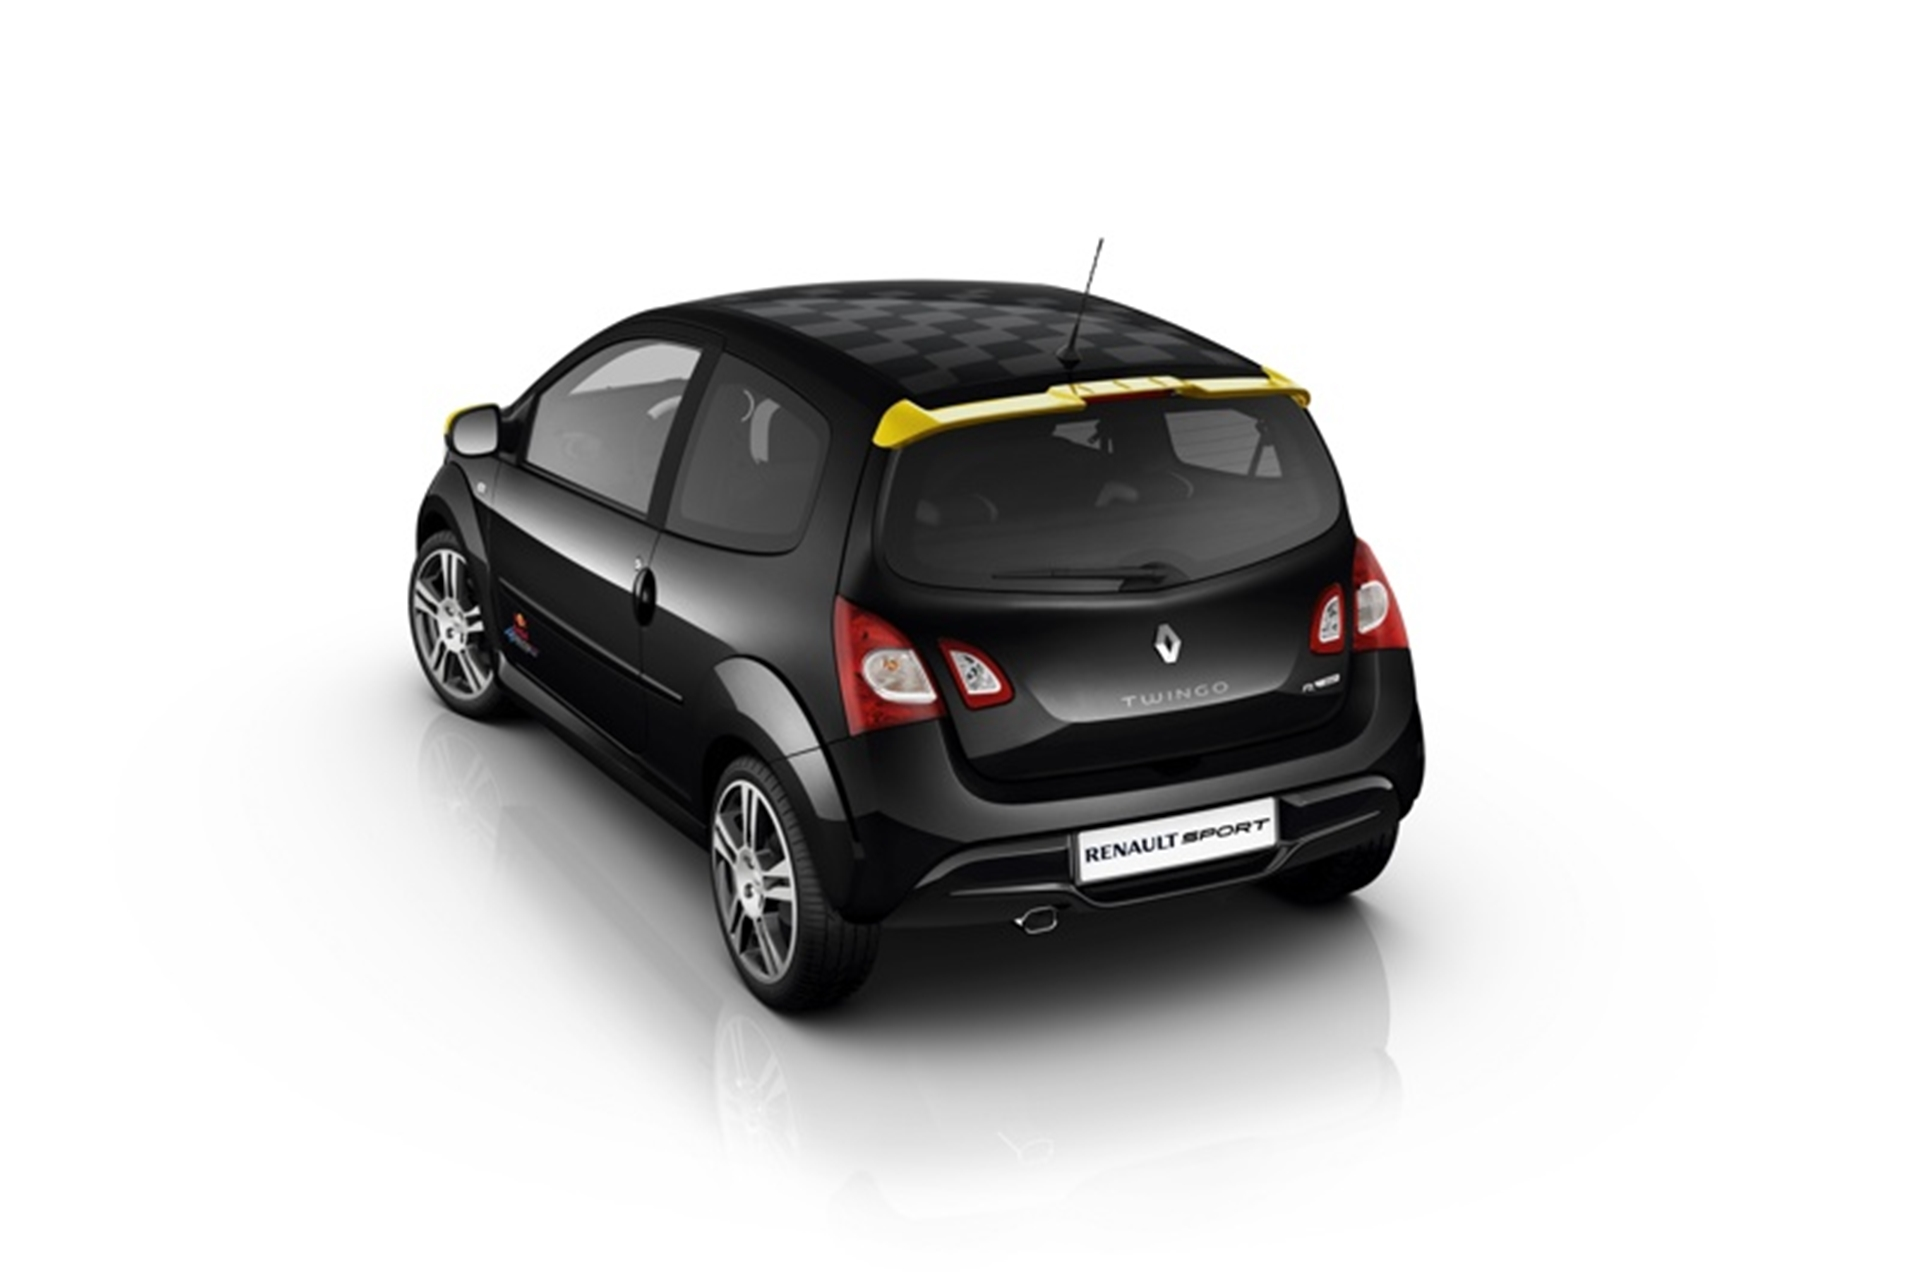 Renault Twingo Red Bull